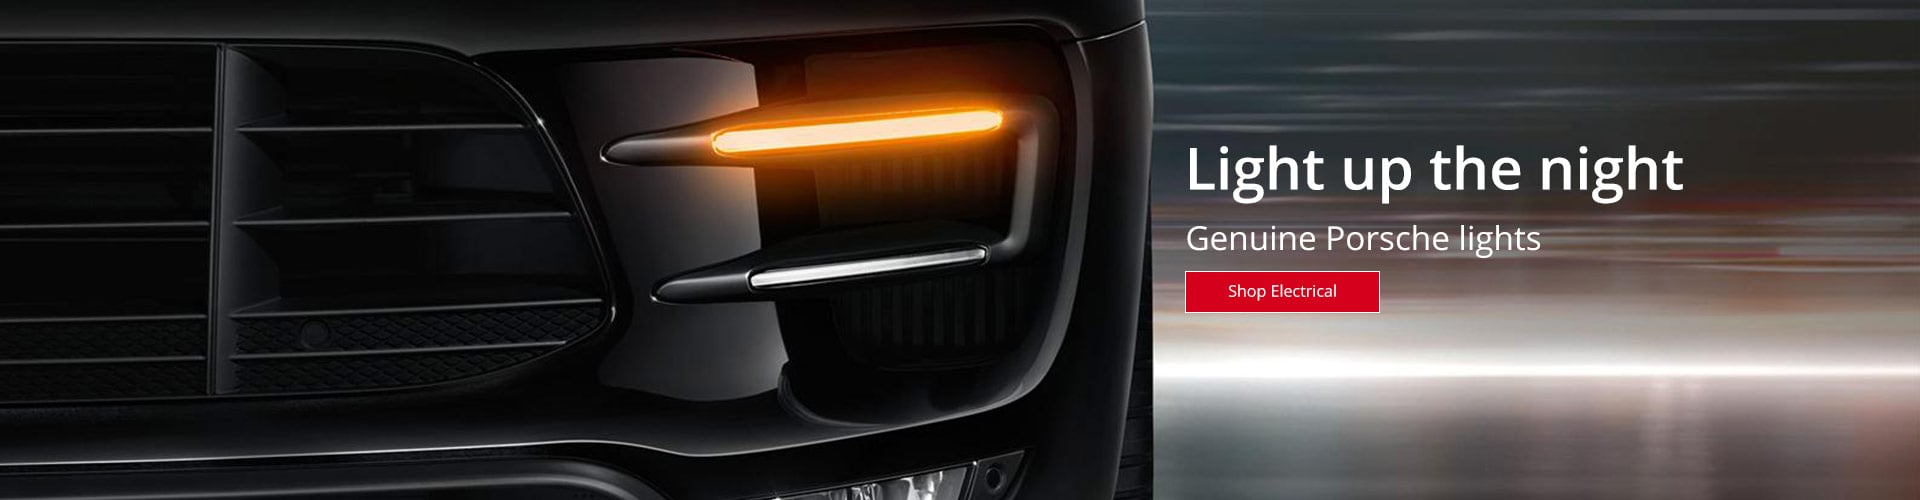 Genuine Porsche Lights and Electrical